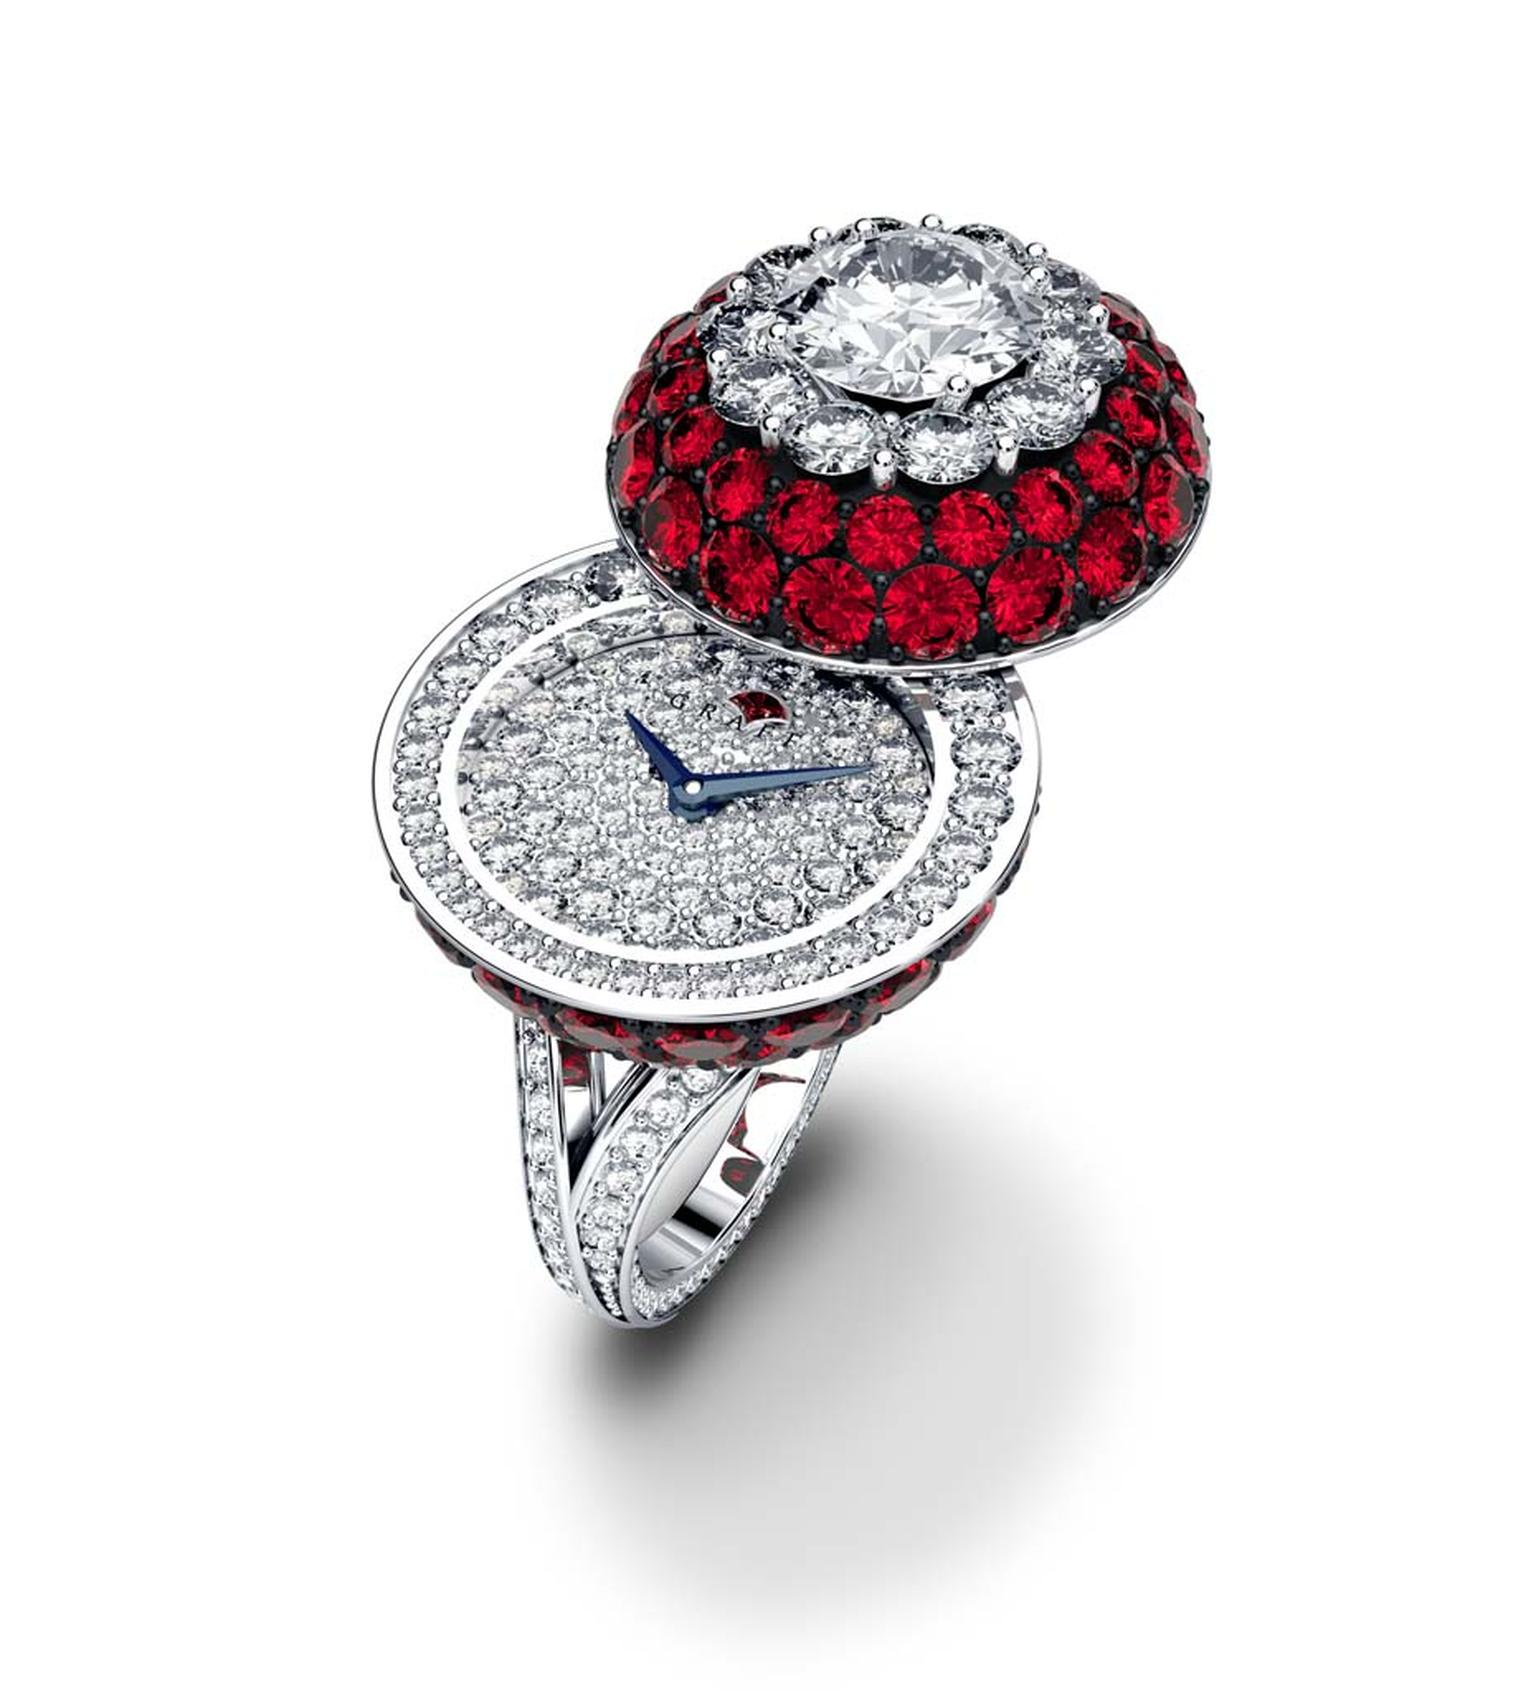 Graff Halo Secret Ring in white gold with rubies.